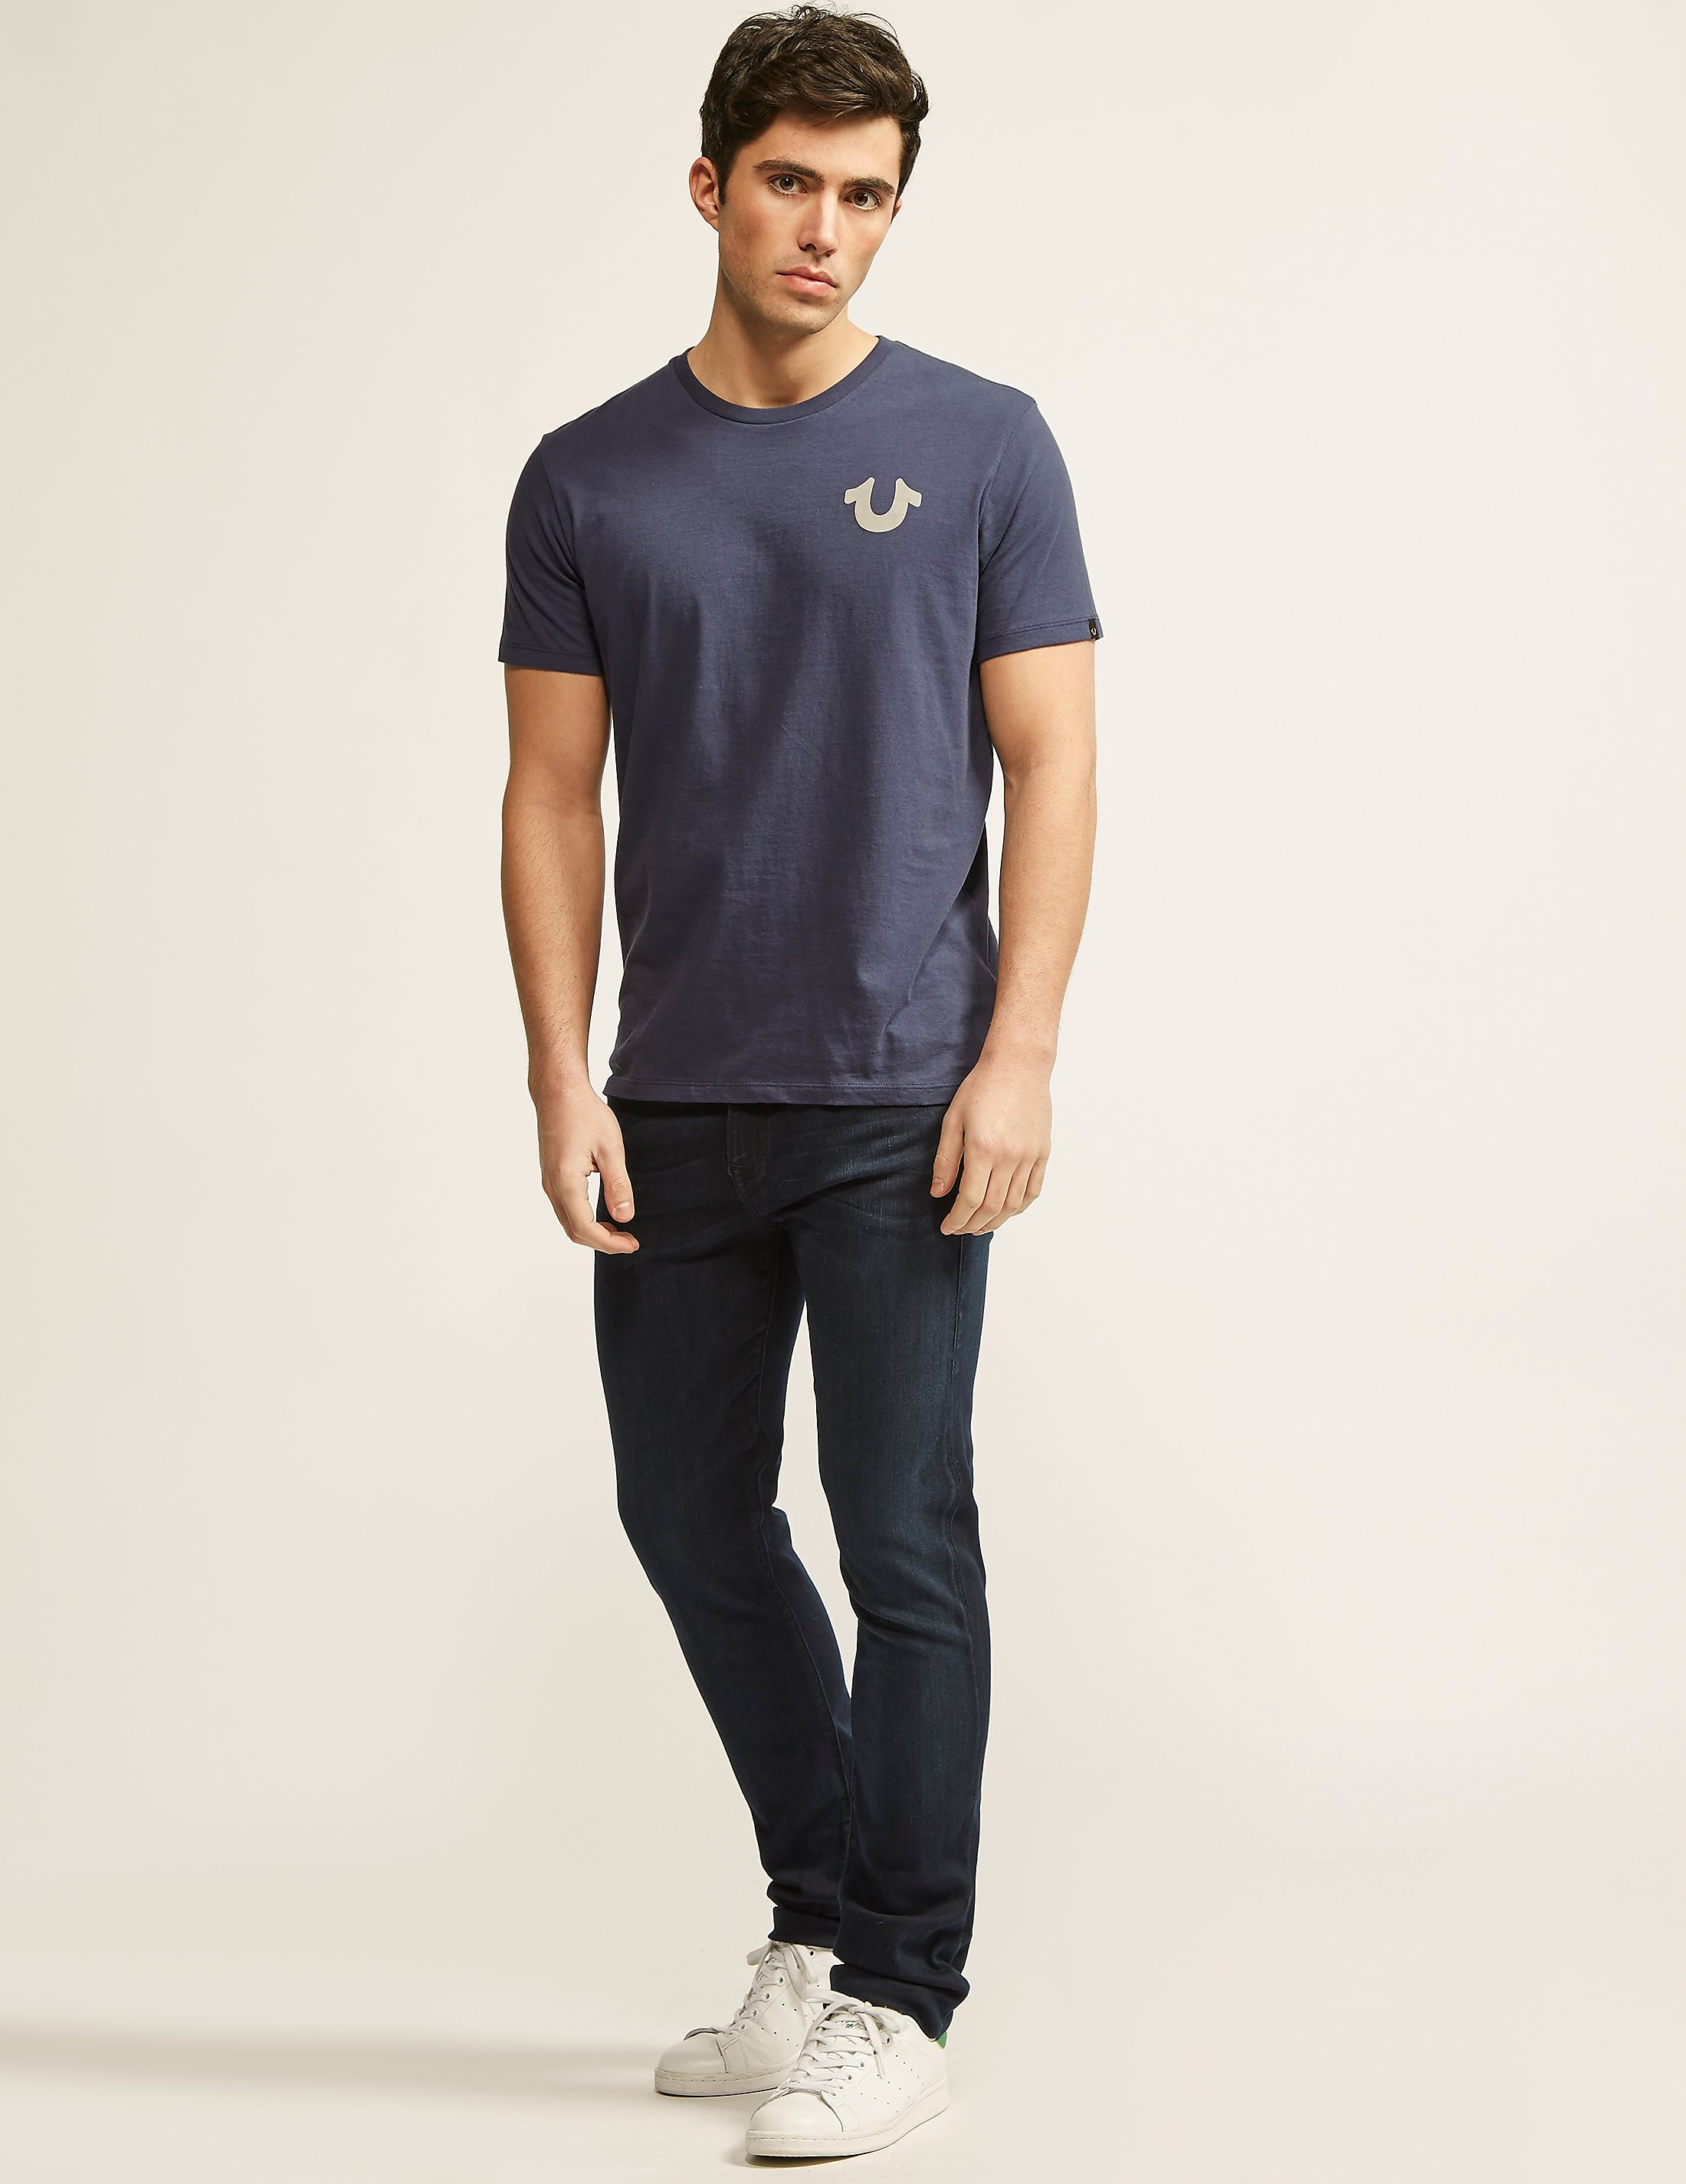 True Religion Crafted With Pride Crew Neck T-Shirt